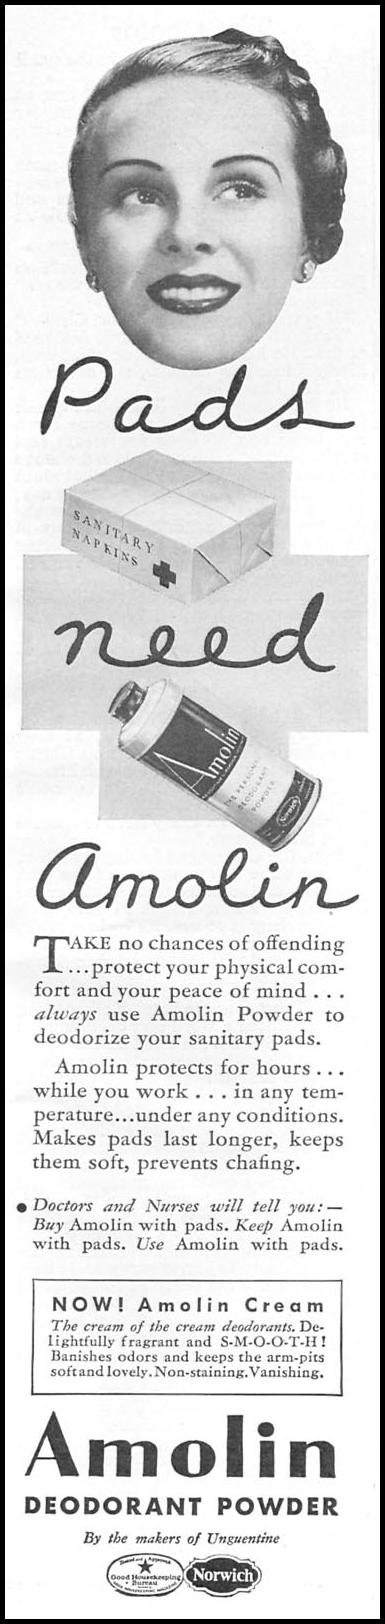 AMOLIN DEODORANT POWDER GOOD HOUSEKEEPING 04/01/1936 p. 211